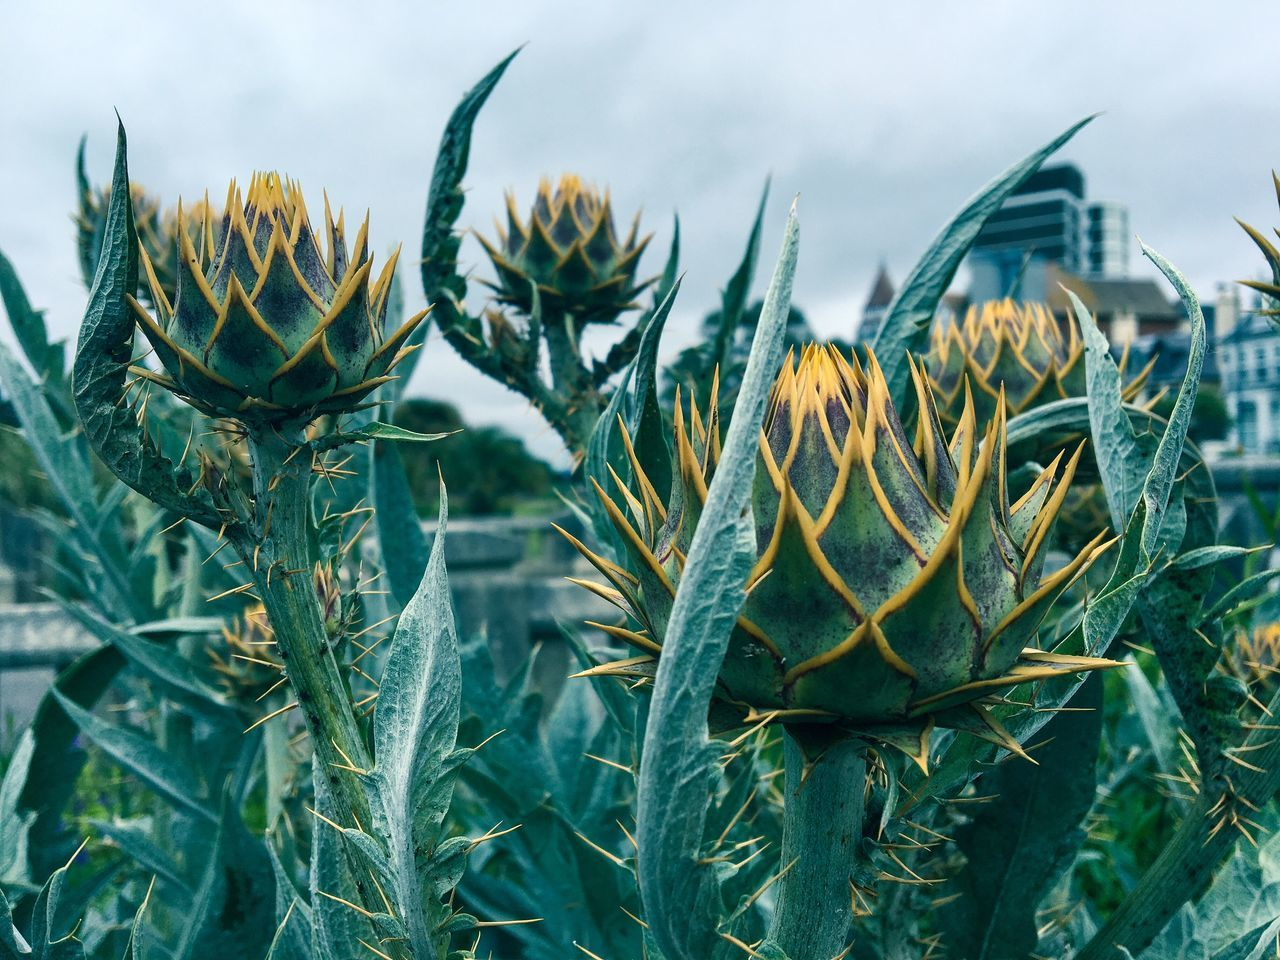 Close-up of spiked flower buds against sky